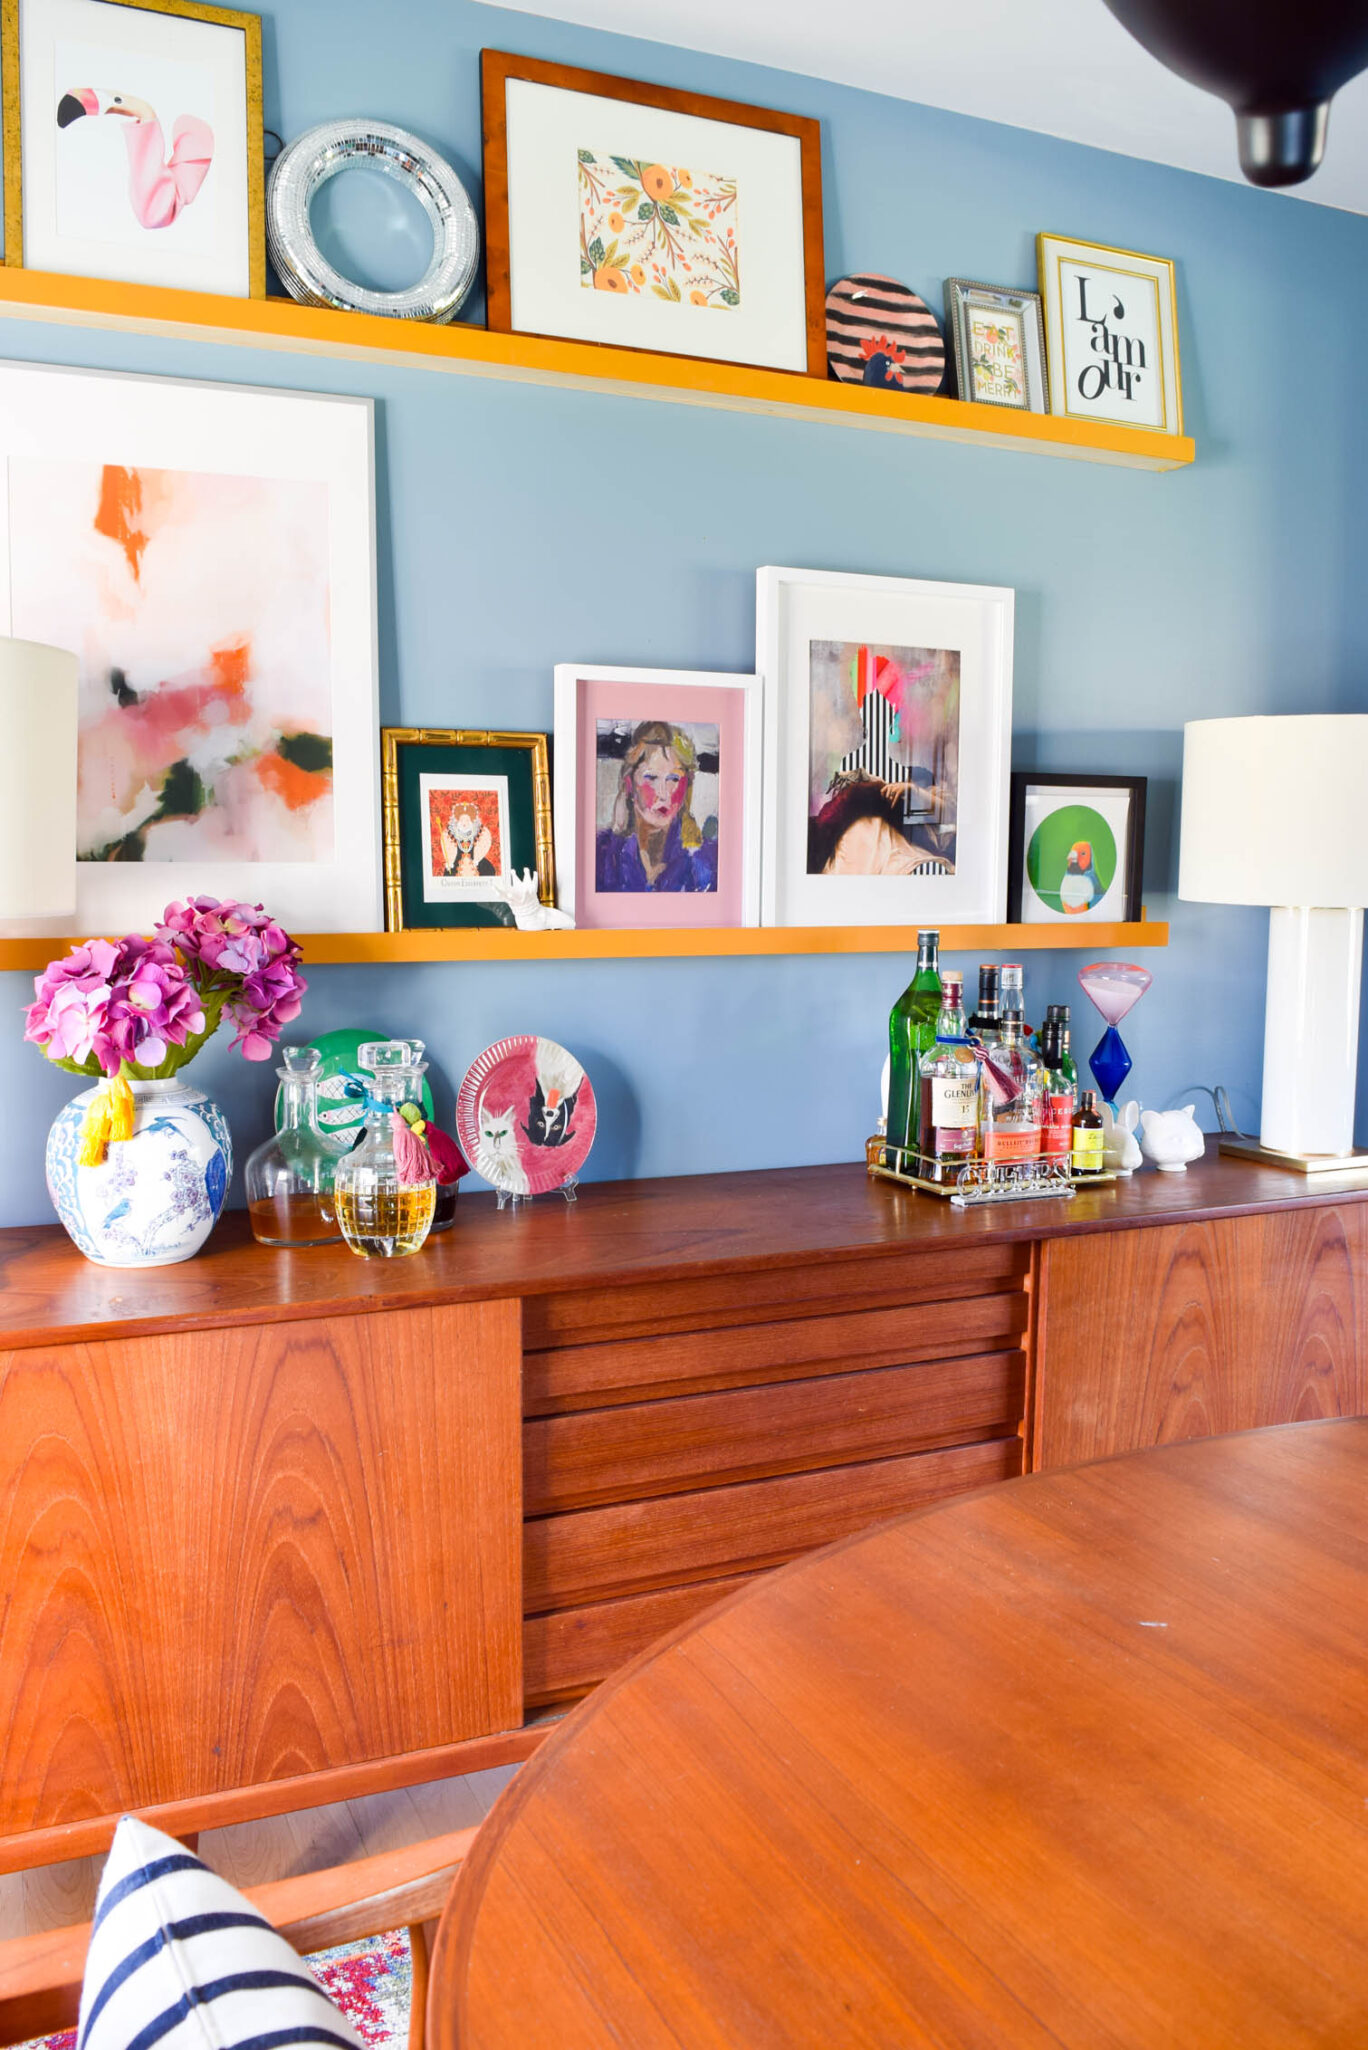 Bright modern artwork on yellow picture ledges above a danish modern buffet in the dining room.